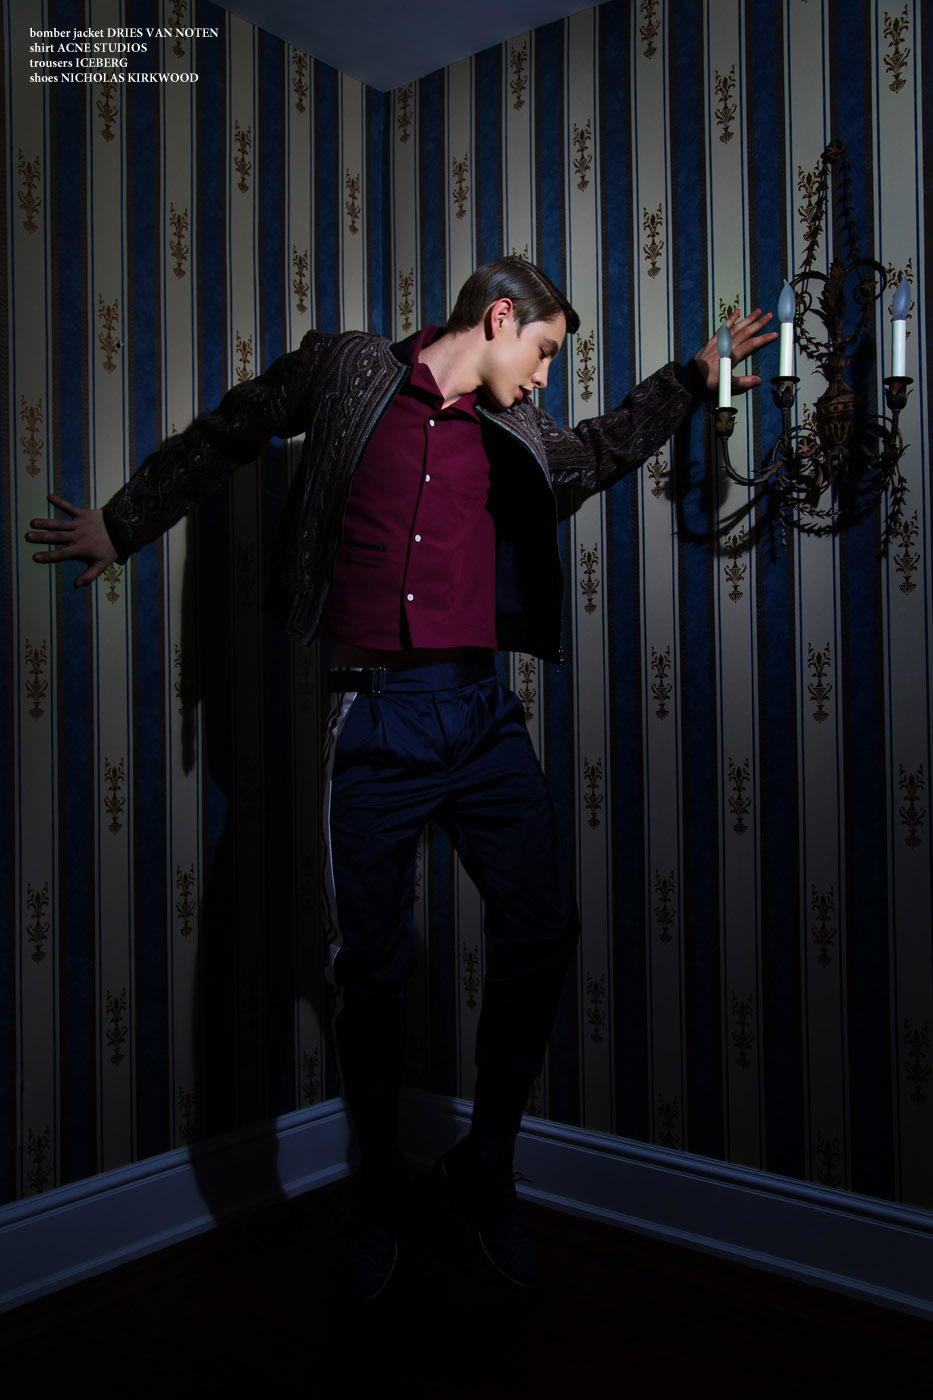 Phillip Mayberry by Meghan Uno for CHASSEUR MAGAZINE